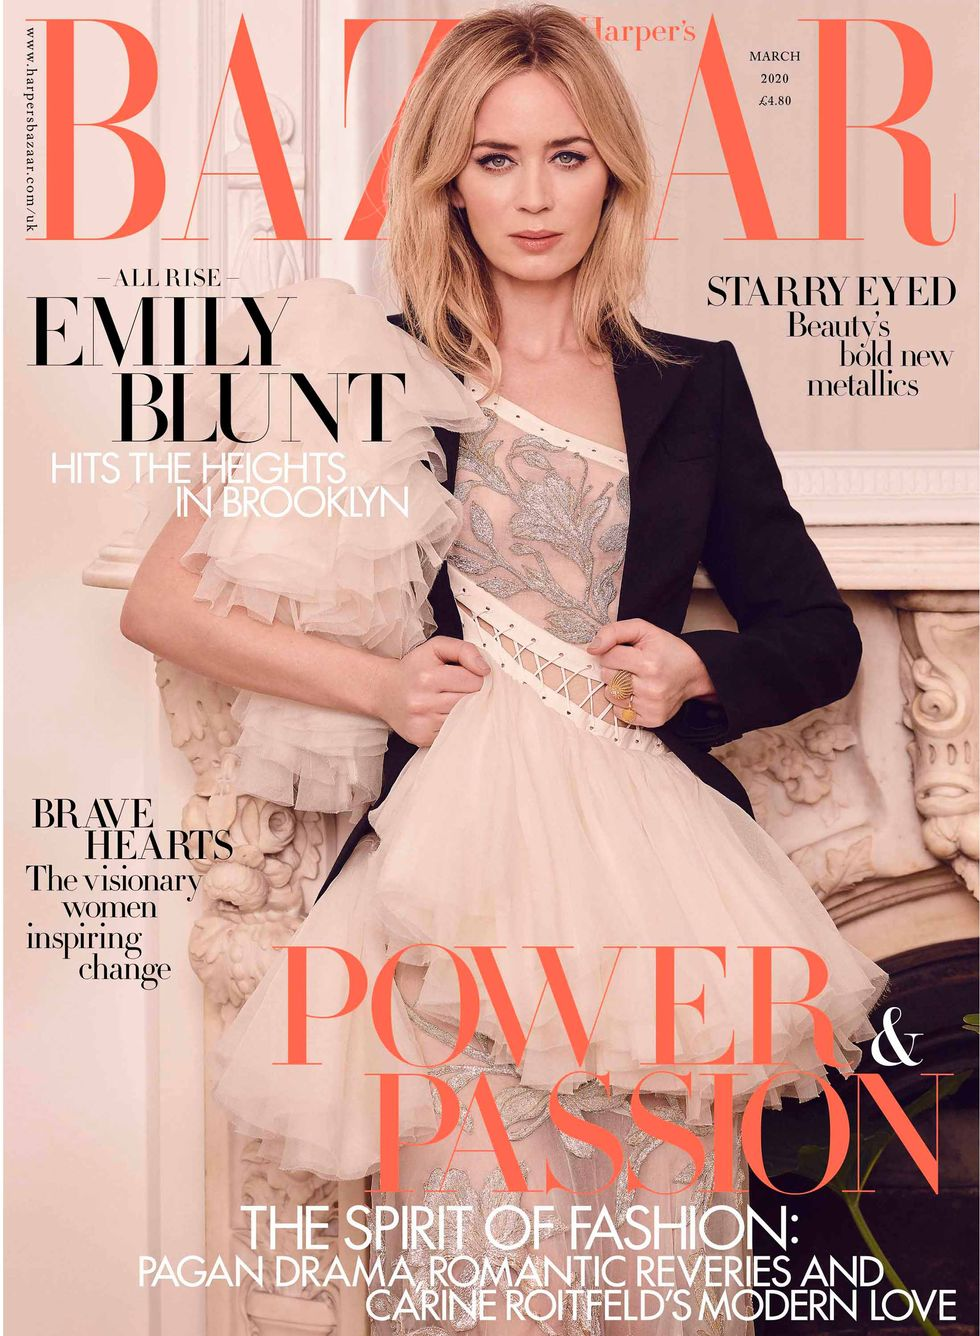 Emily wears Alexander McQueen dress and Cartier jewellery on the newsstand cover